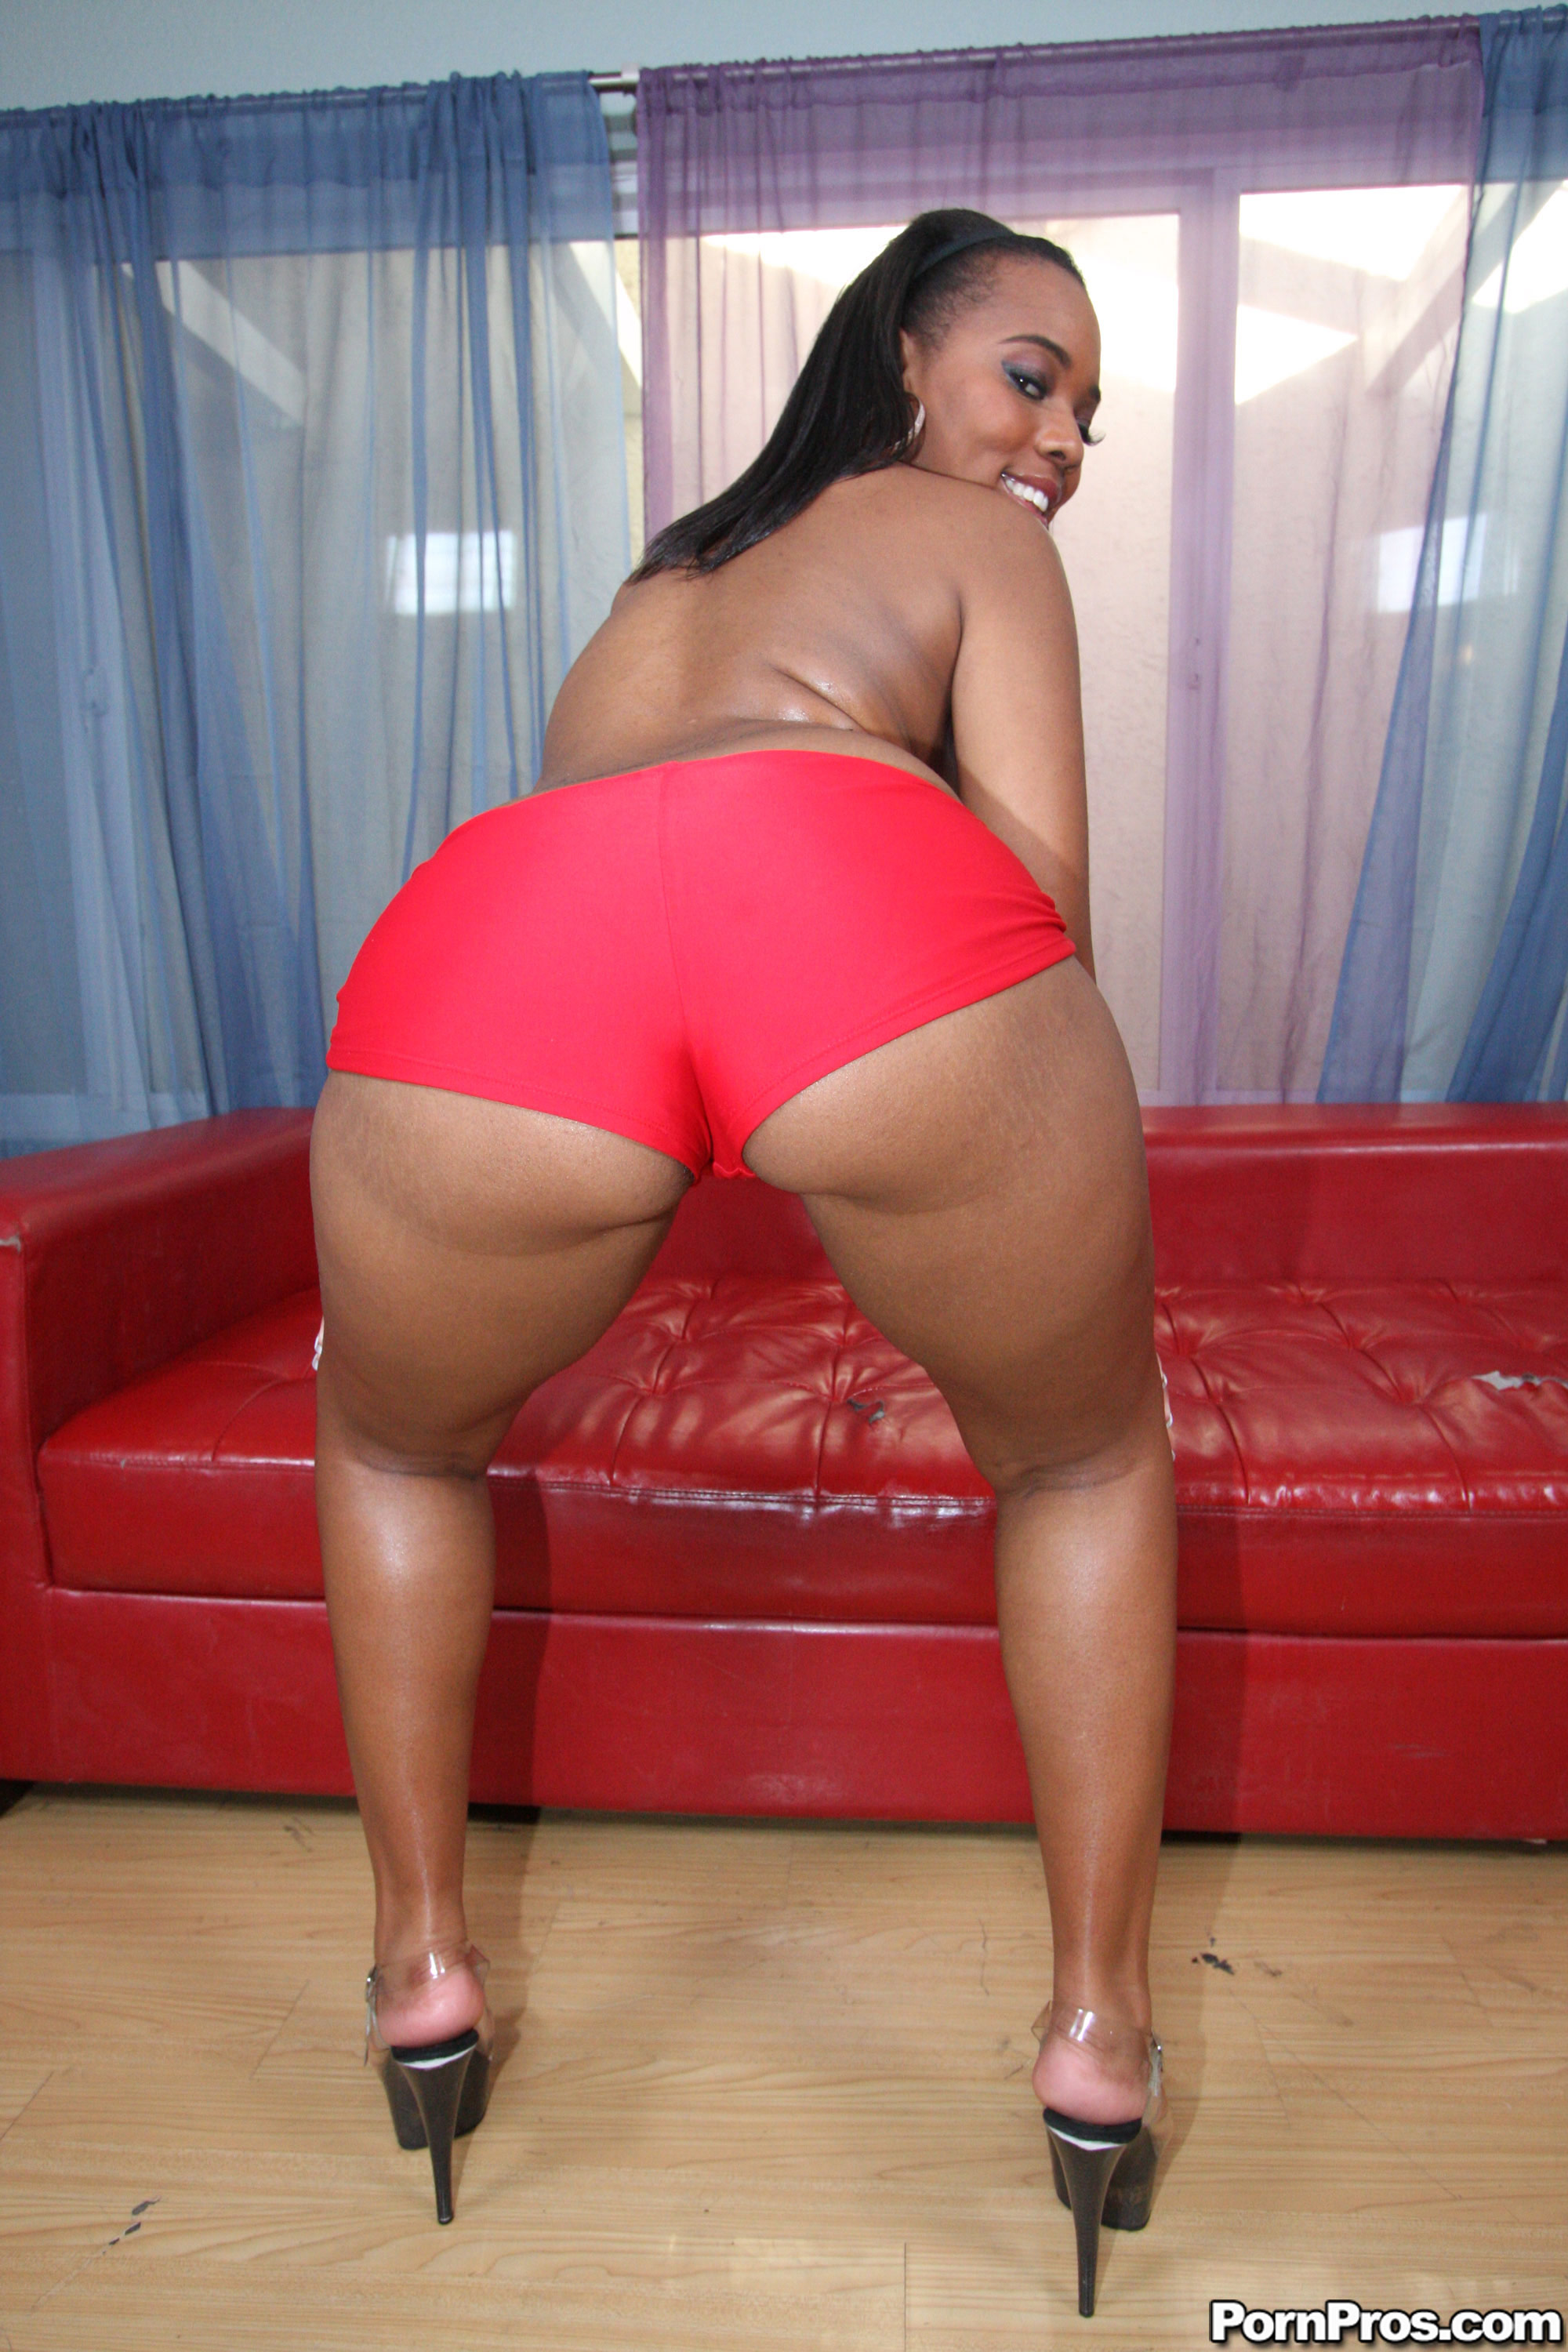 Recommend big fat black booty getting fucked happens. Let's